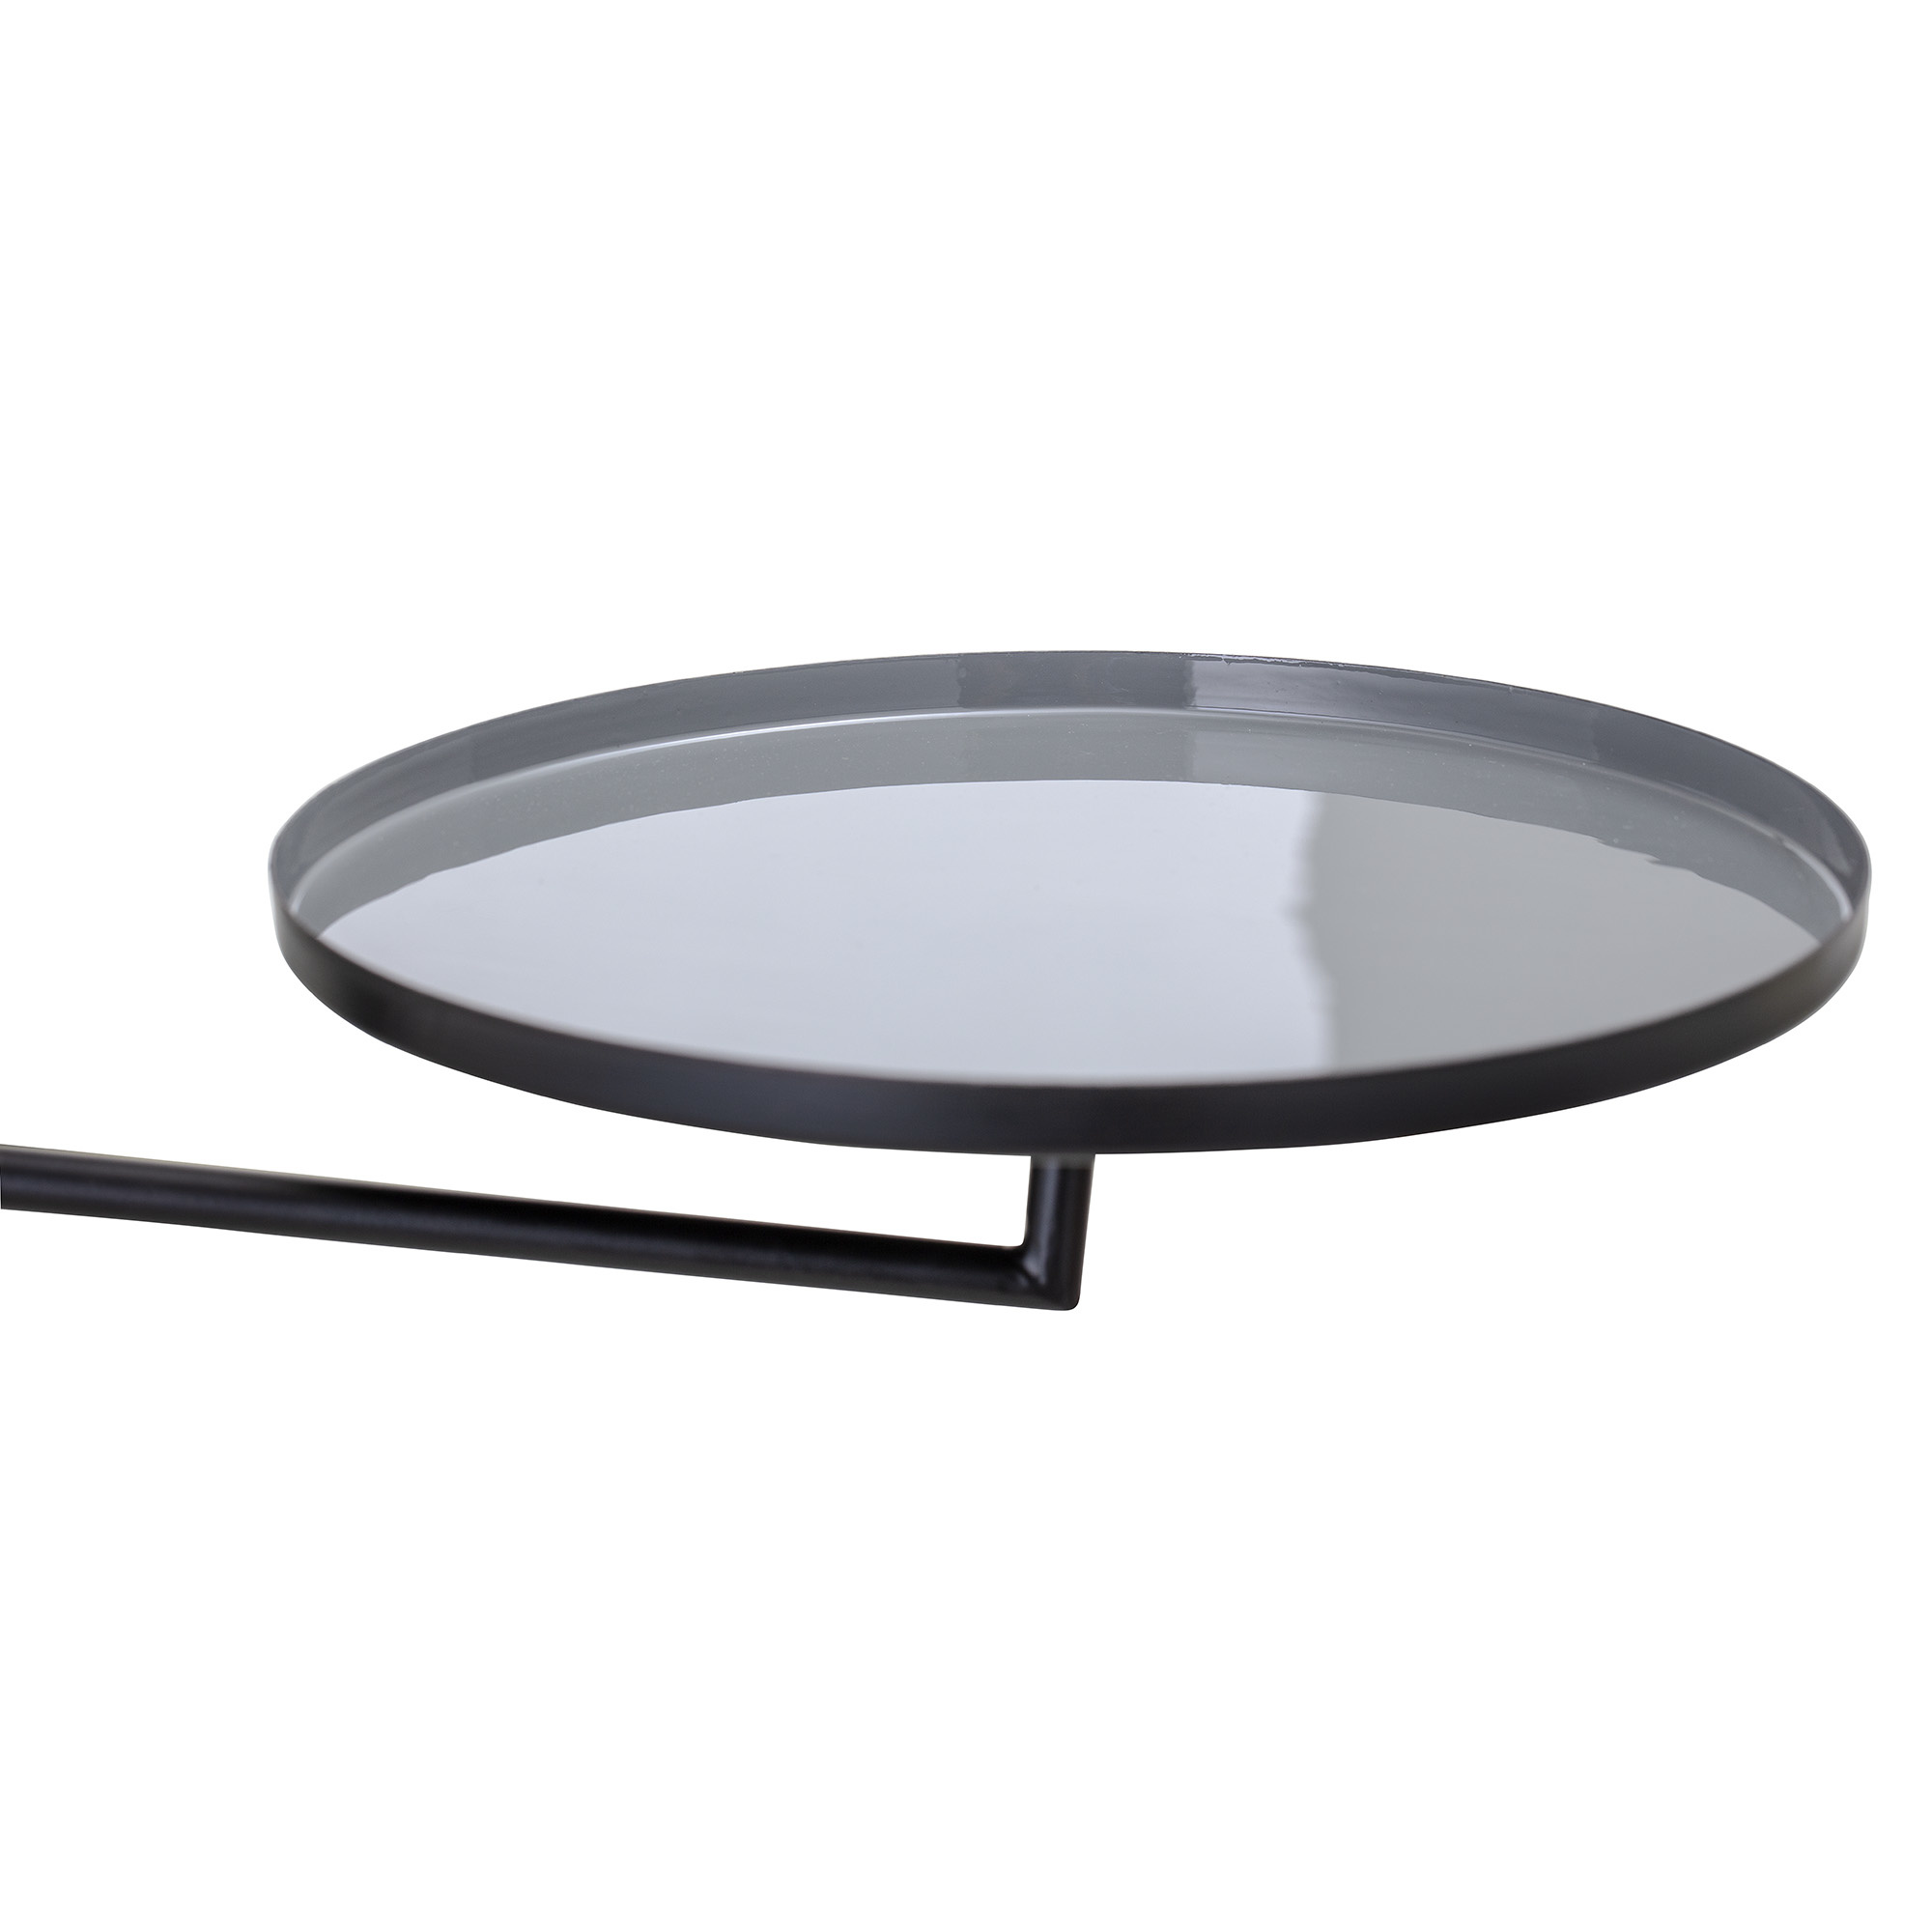 Bloomingville wall tray, black / grey